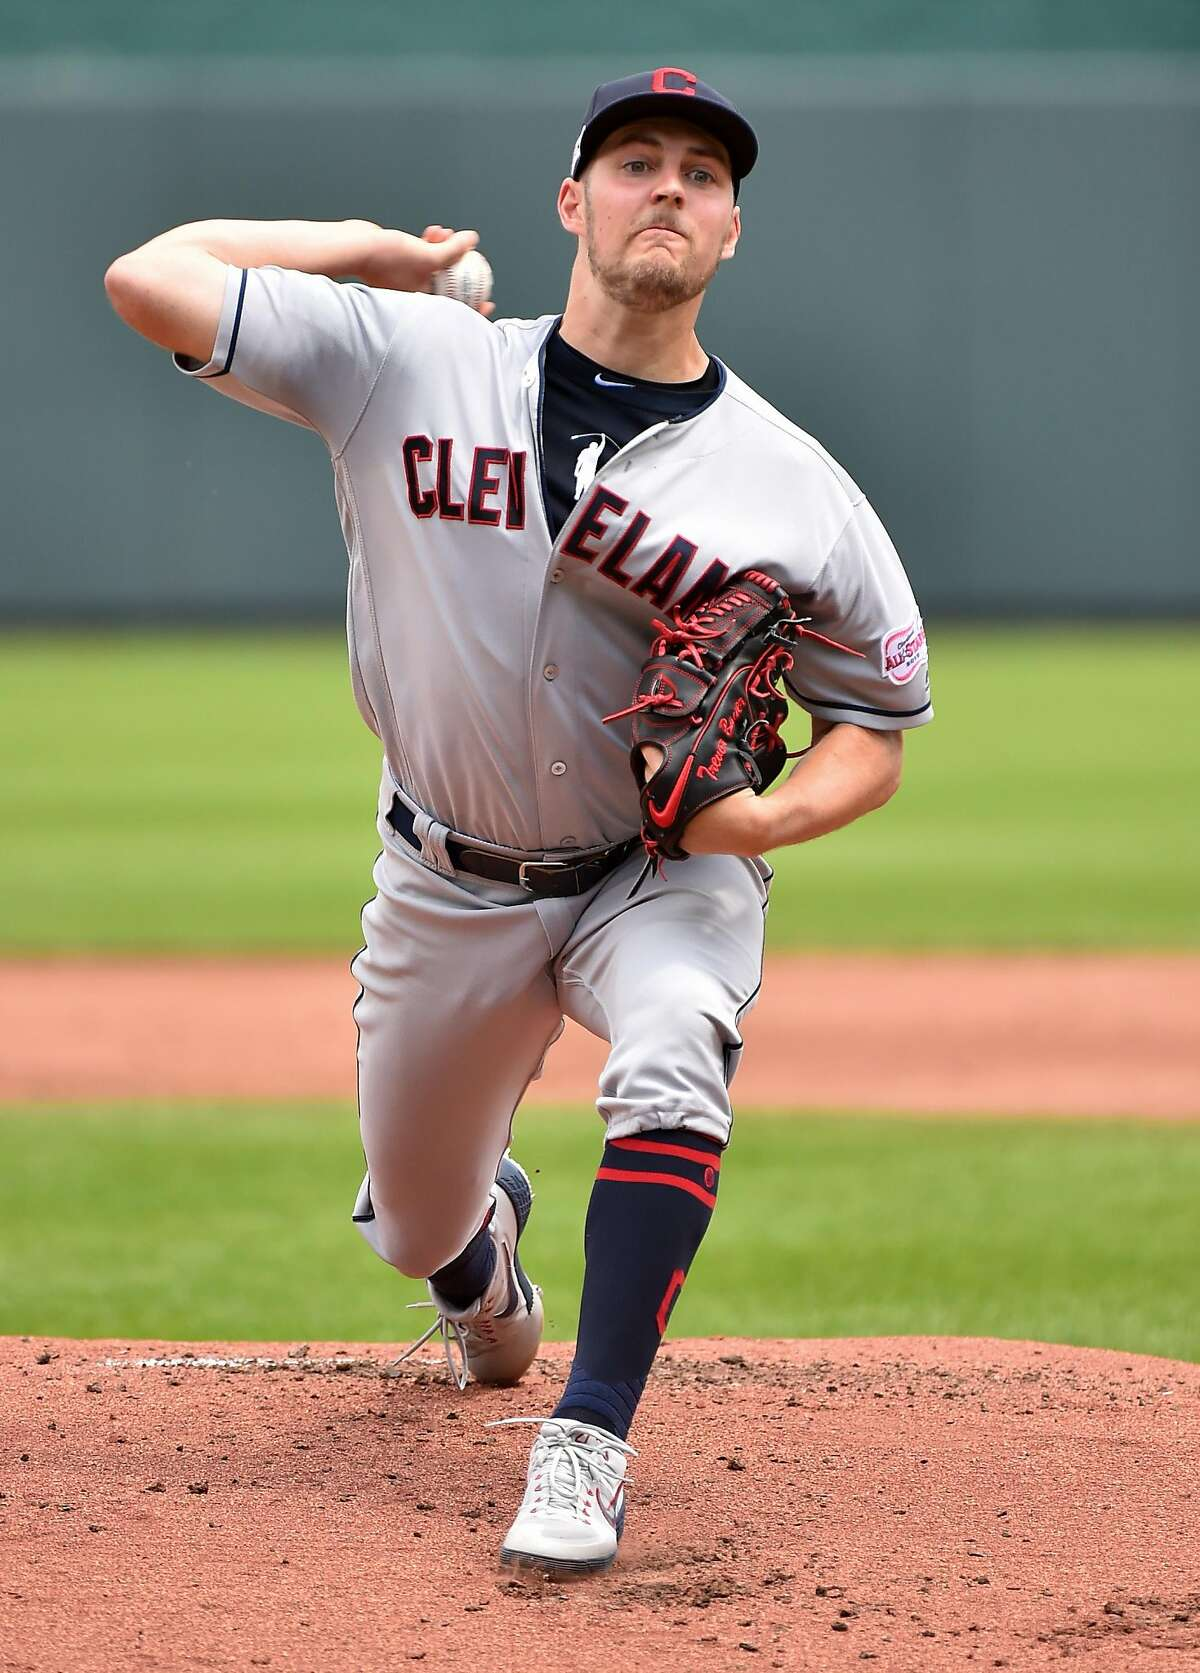 Starting pitcher Trevor Bauer #47 of the Cleveland Indians throws in the first inning against Kansas City Royals at Kauffman Stadium on July 28, 2019 in Kansas City, Missouri. (Photo by Ed Zurga/Getty Images)